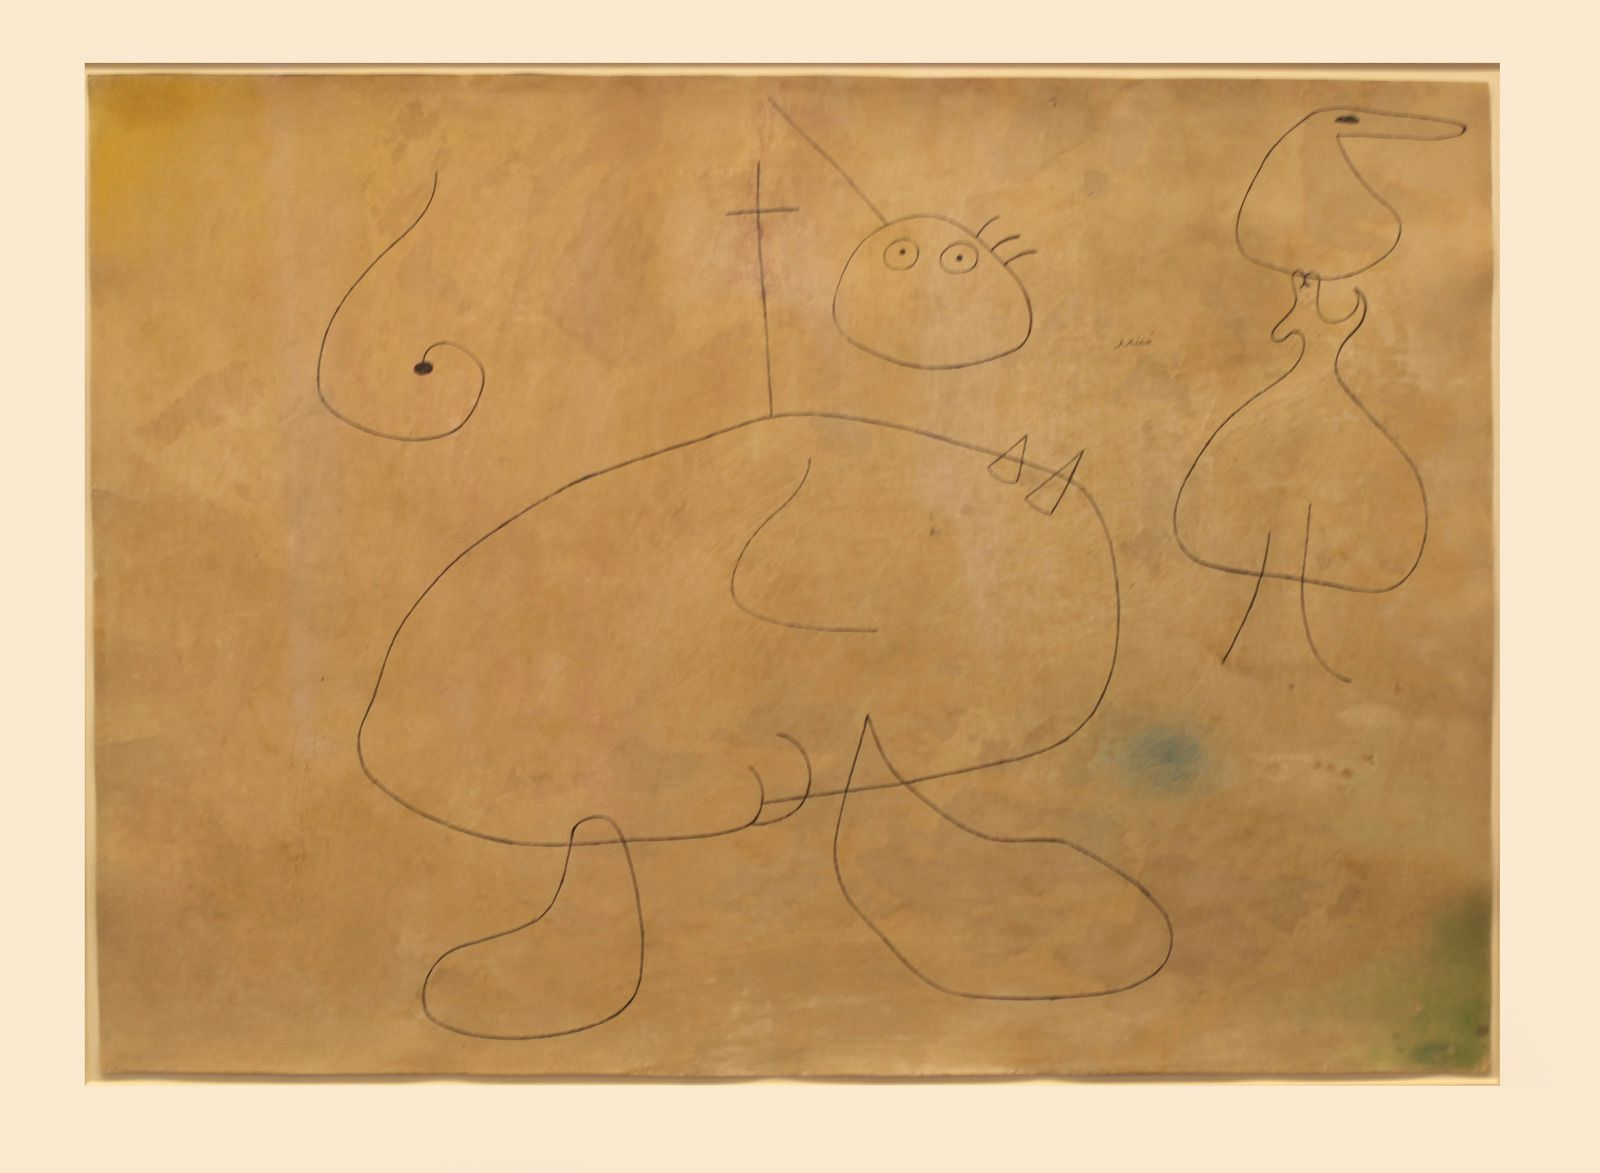 """Femme devant l'horizon"", 1942 de Joan MIRO - Courtesy Galerie Lelong & Co. Paris © Photo Éric Simon"